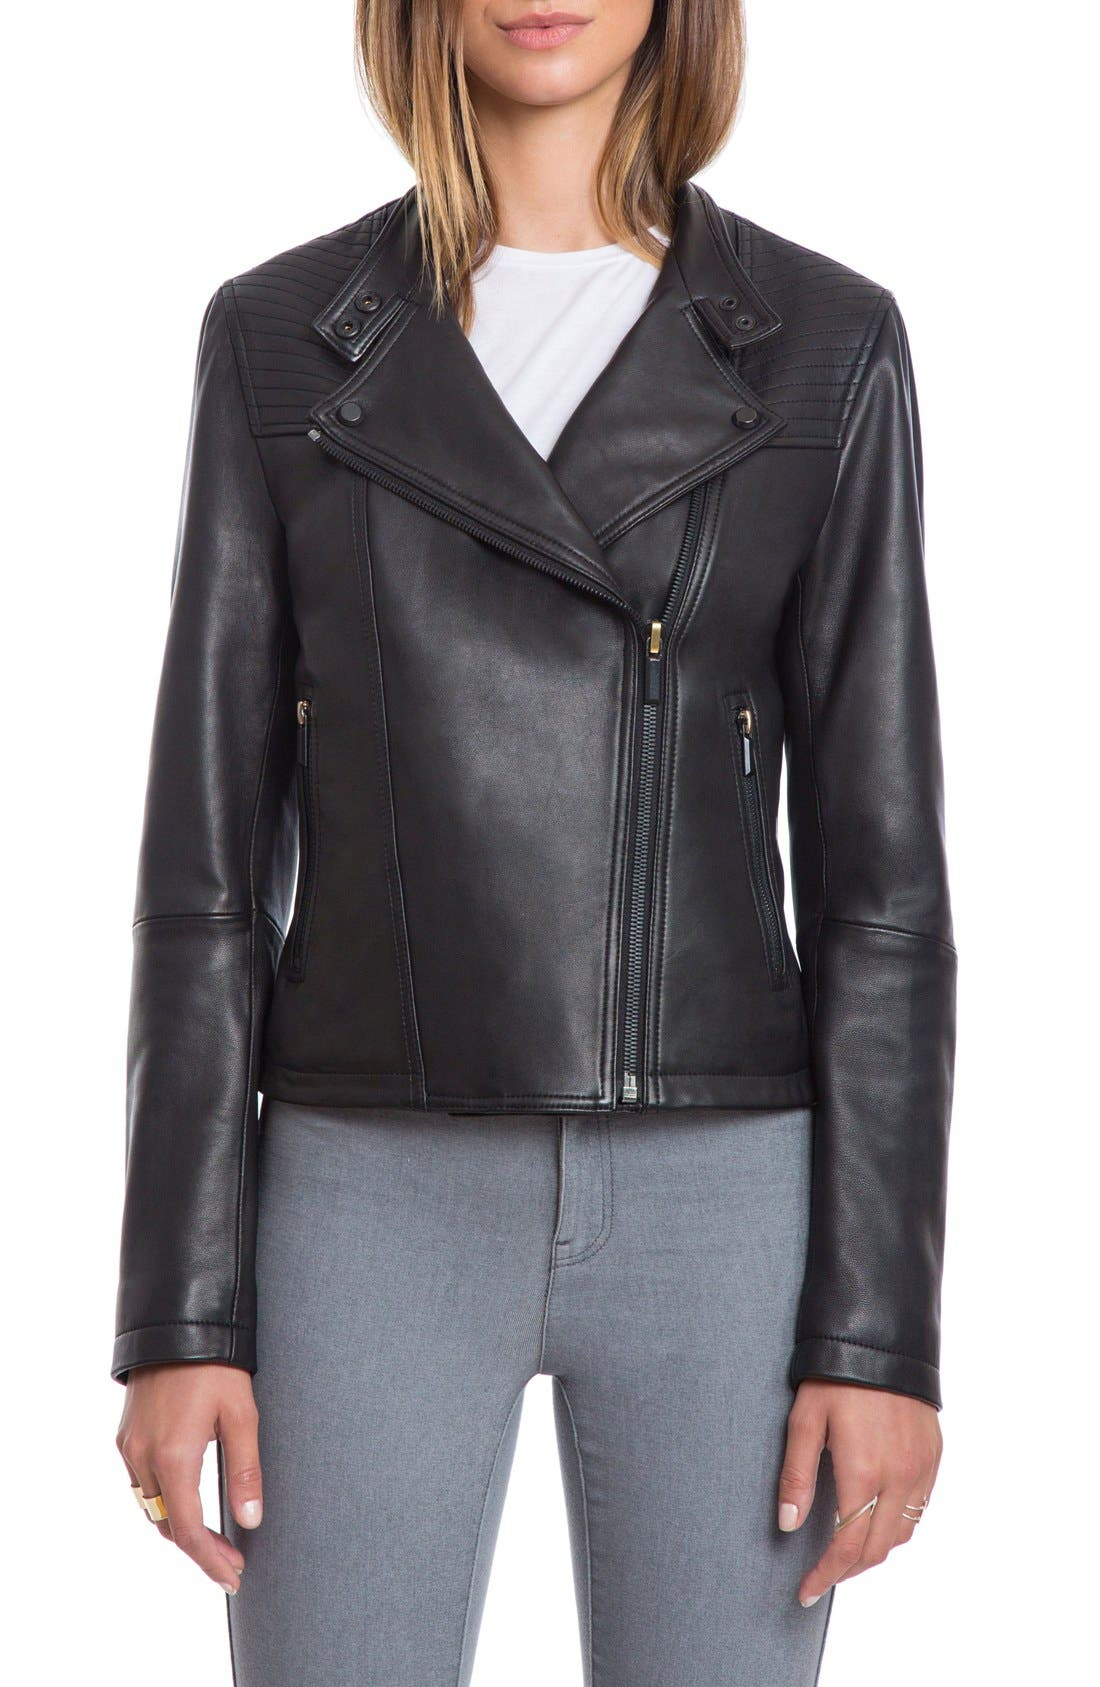 Alternate Image 1 Selected - Bagatelle Quilted Lambskin Leather Moto Jacket